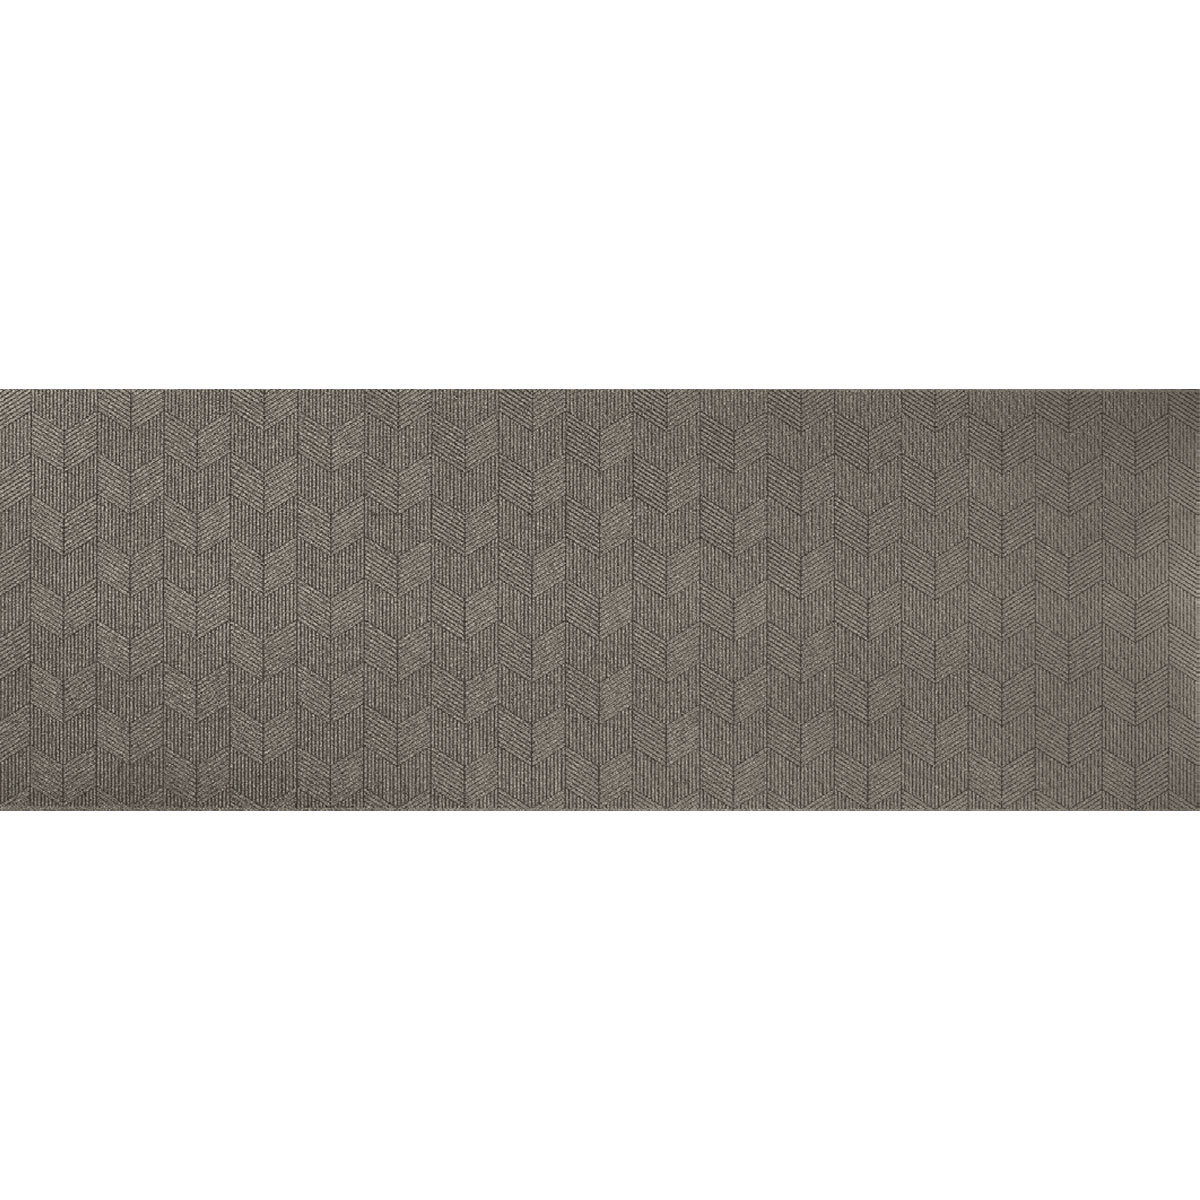 W00256 THE PEARL CHEVRON GREY 1